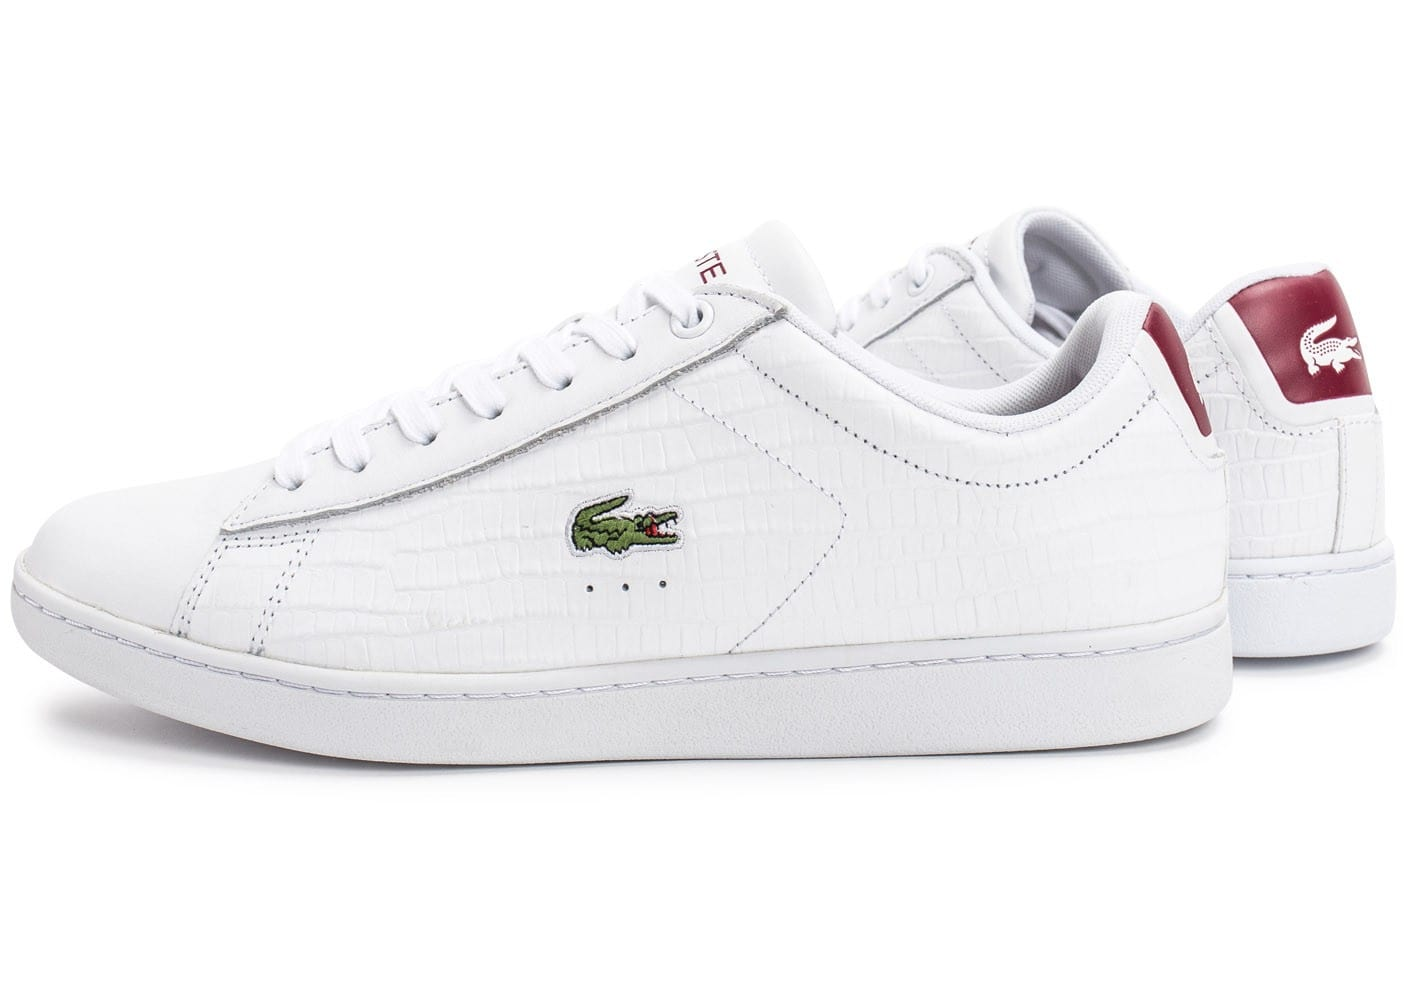 Blanche Croc Carnaby Baskets Evo Chaussures Lacoste Bordeaux Homme vwOmn0N8